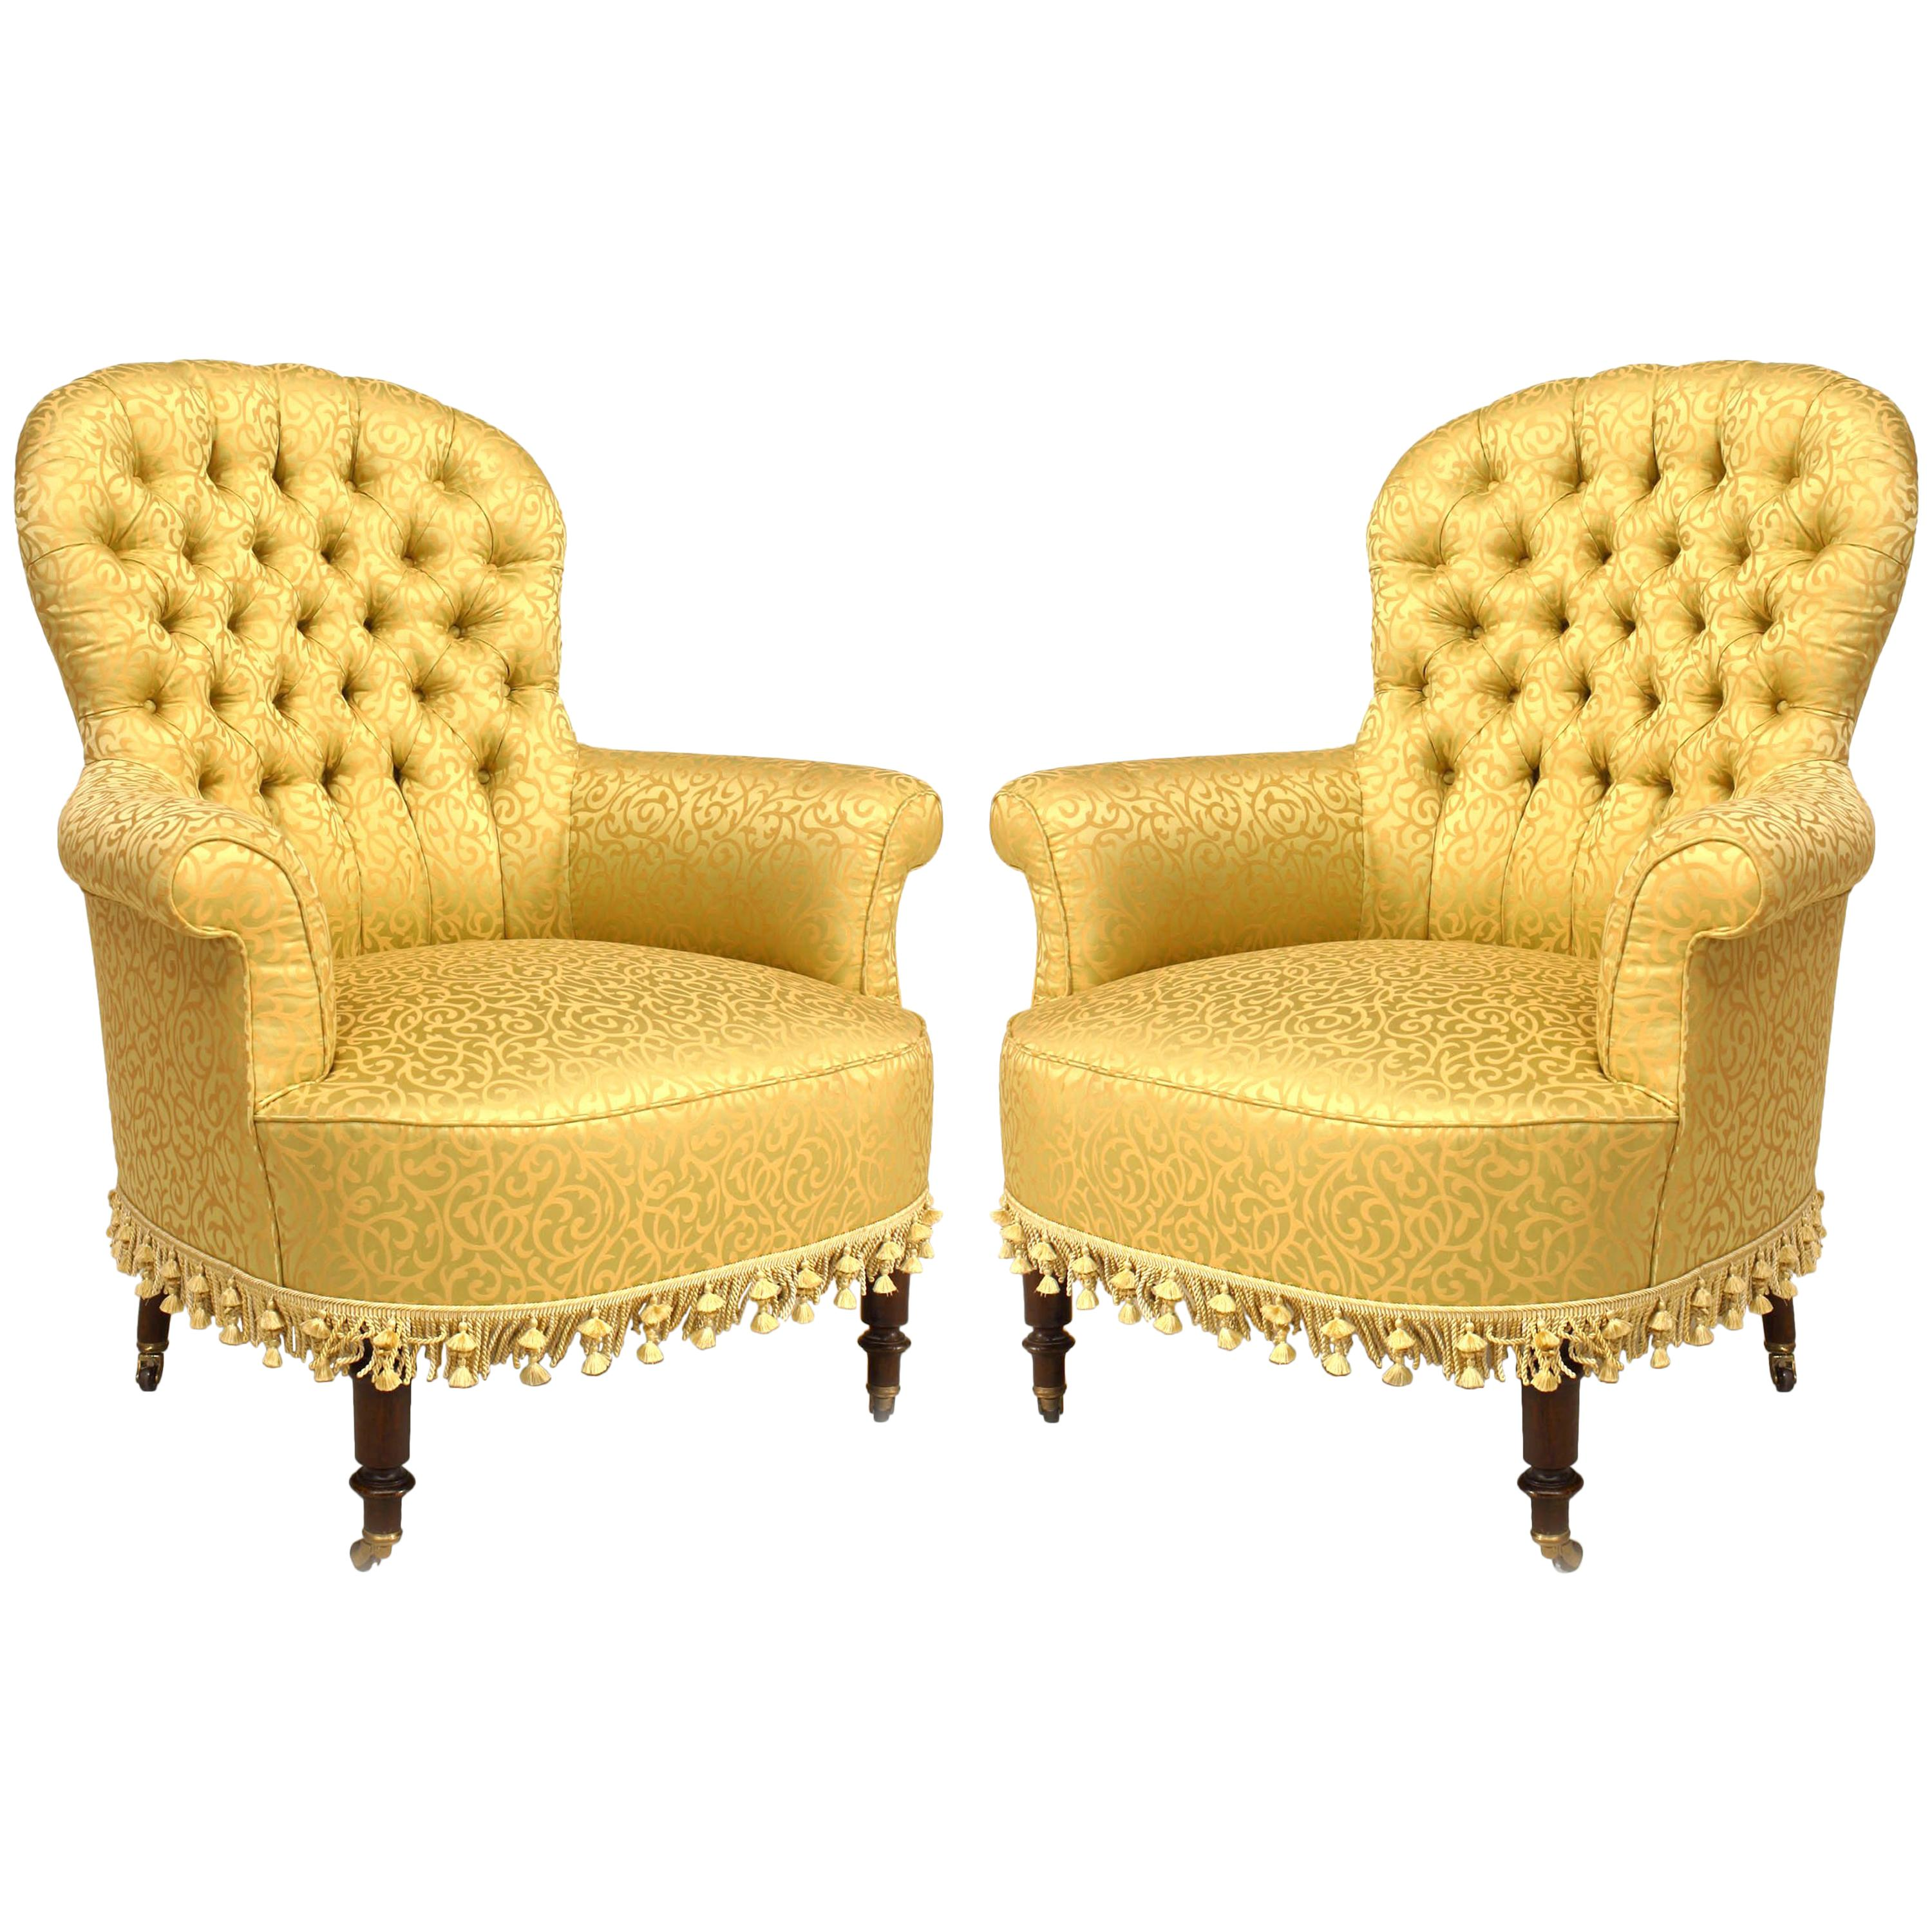 Pair of American Victorian Style '20th Century' Gilt Tub Chairs